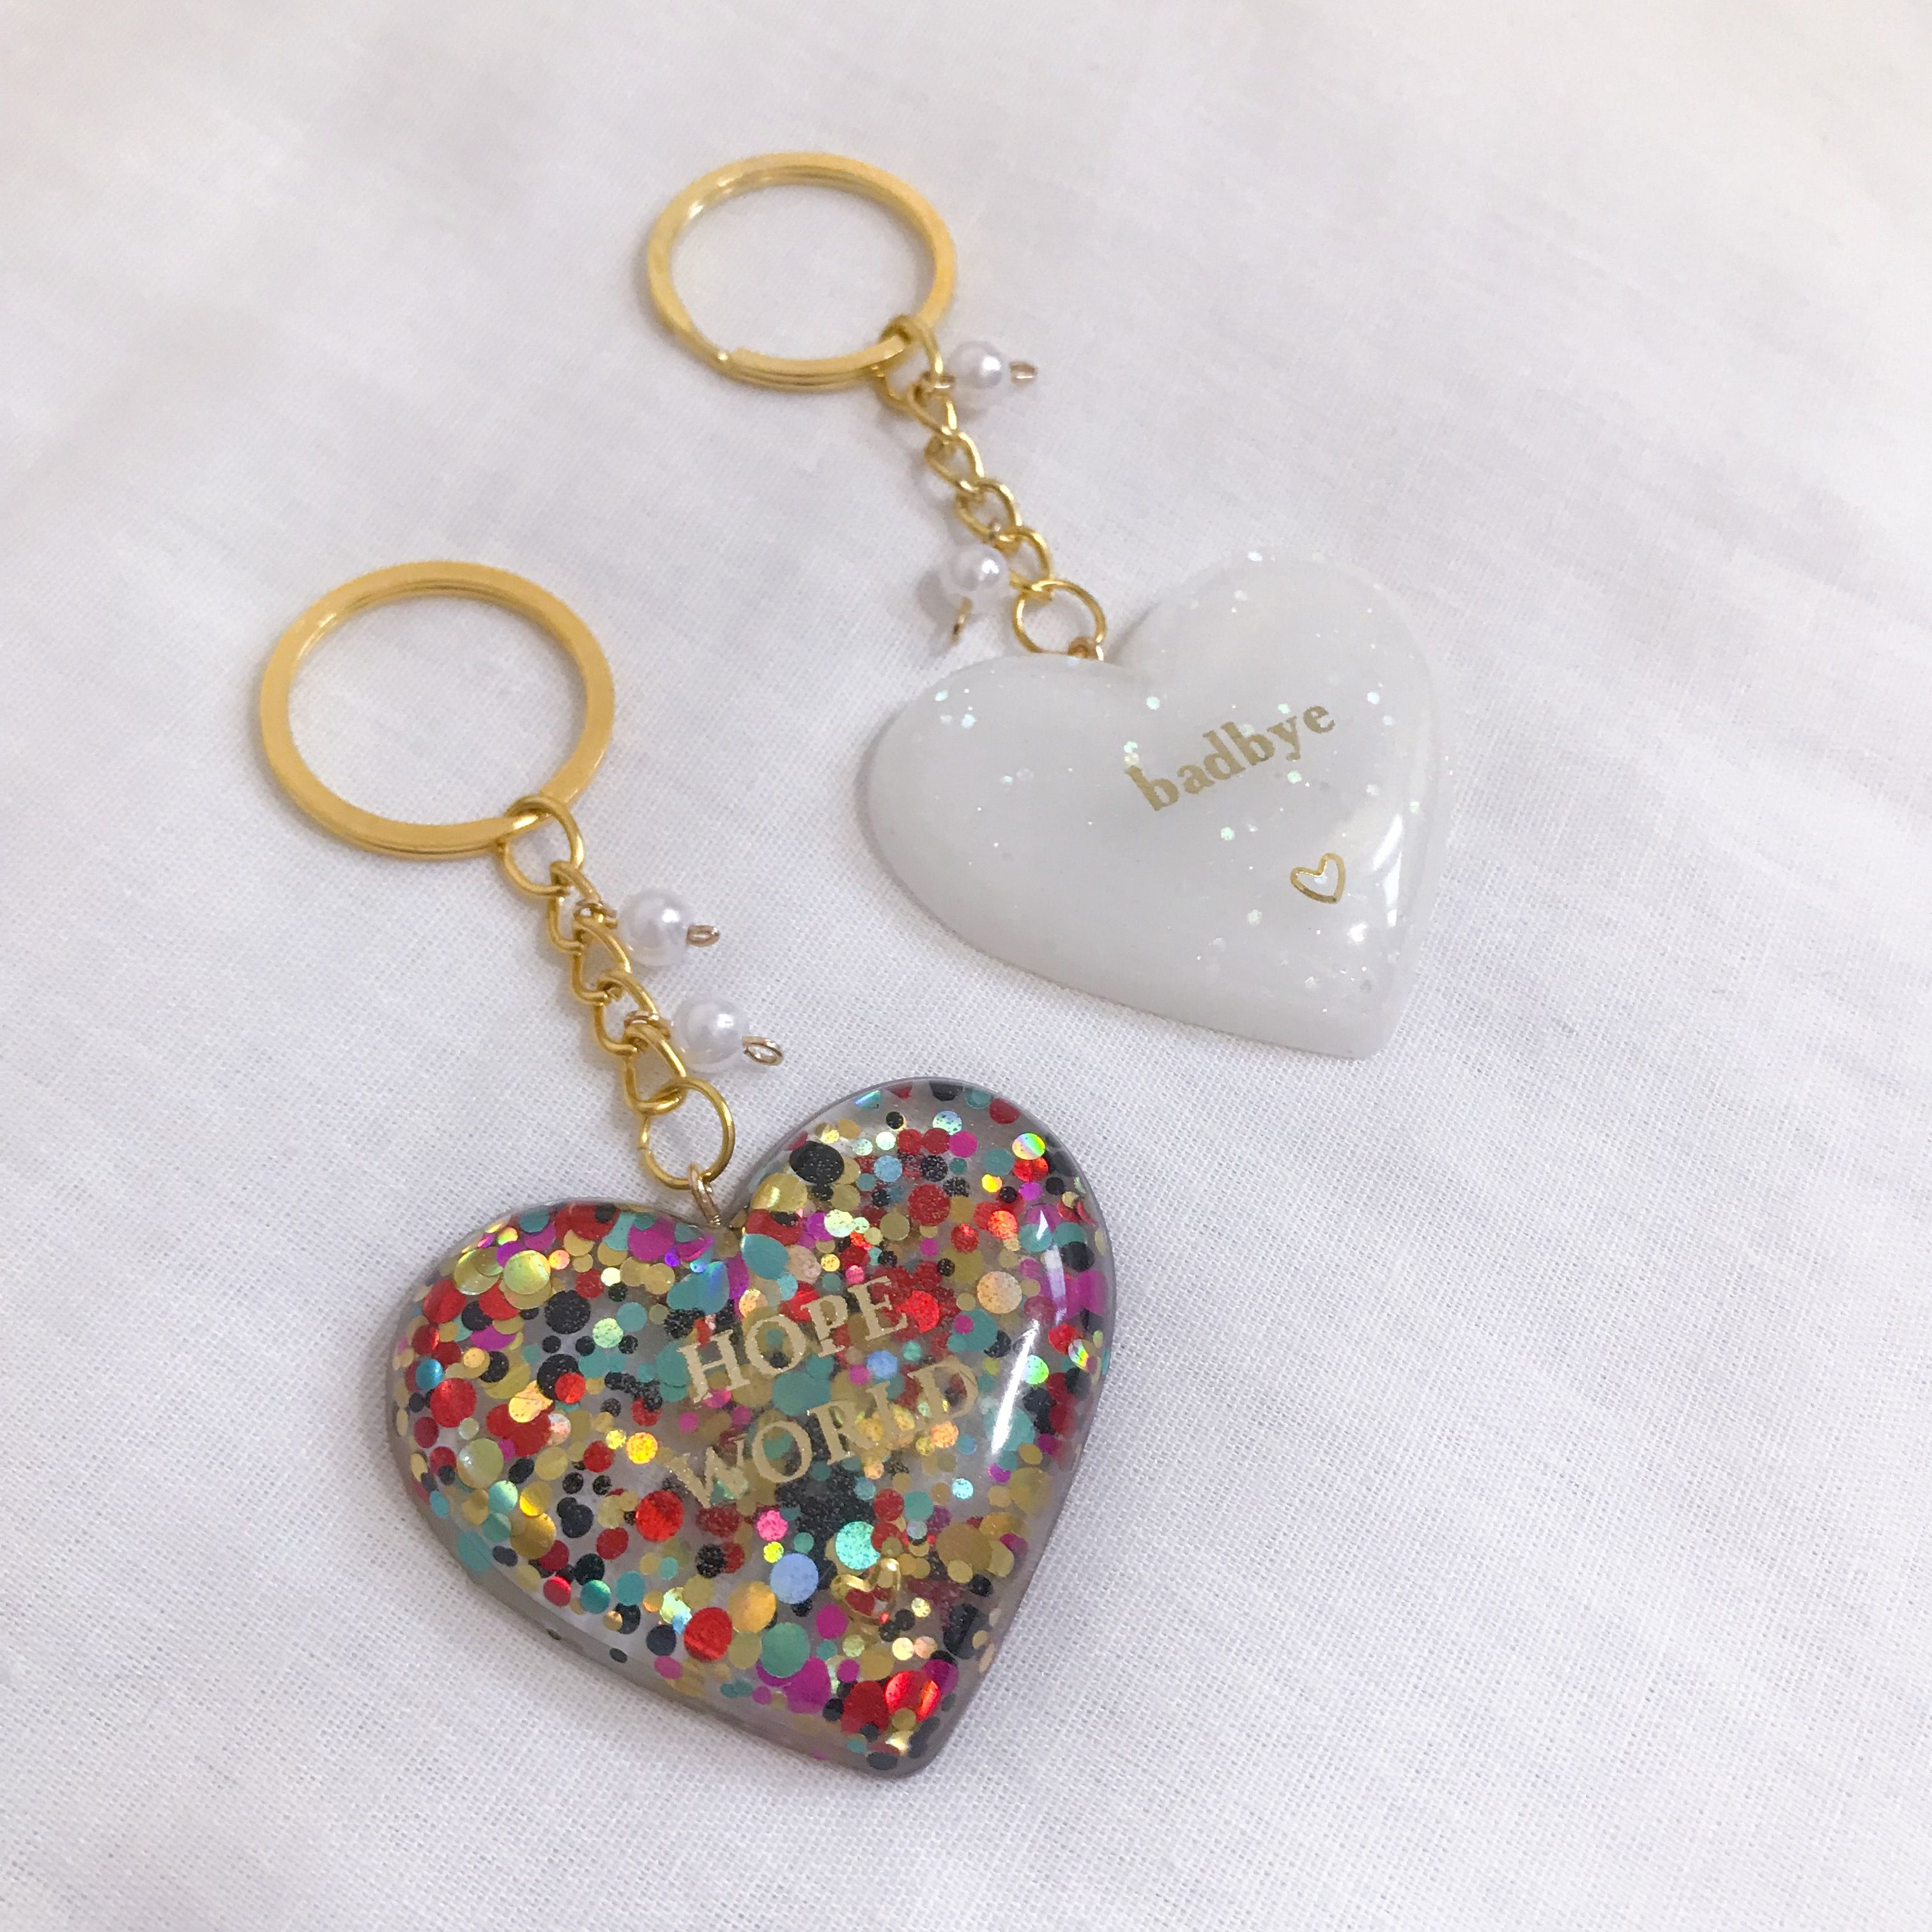 Pin by Ally P.Ch. on Kpop aesthetic Resin jewelry diy